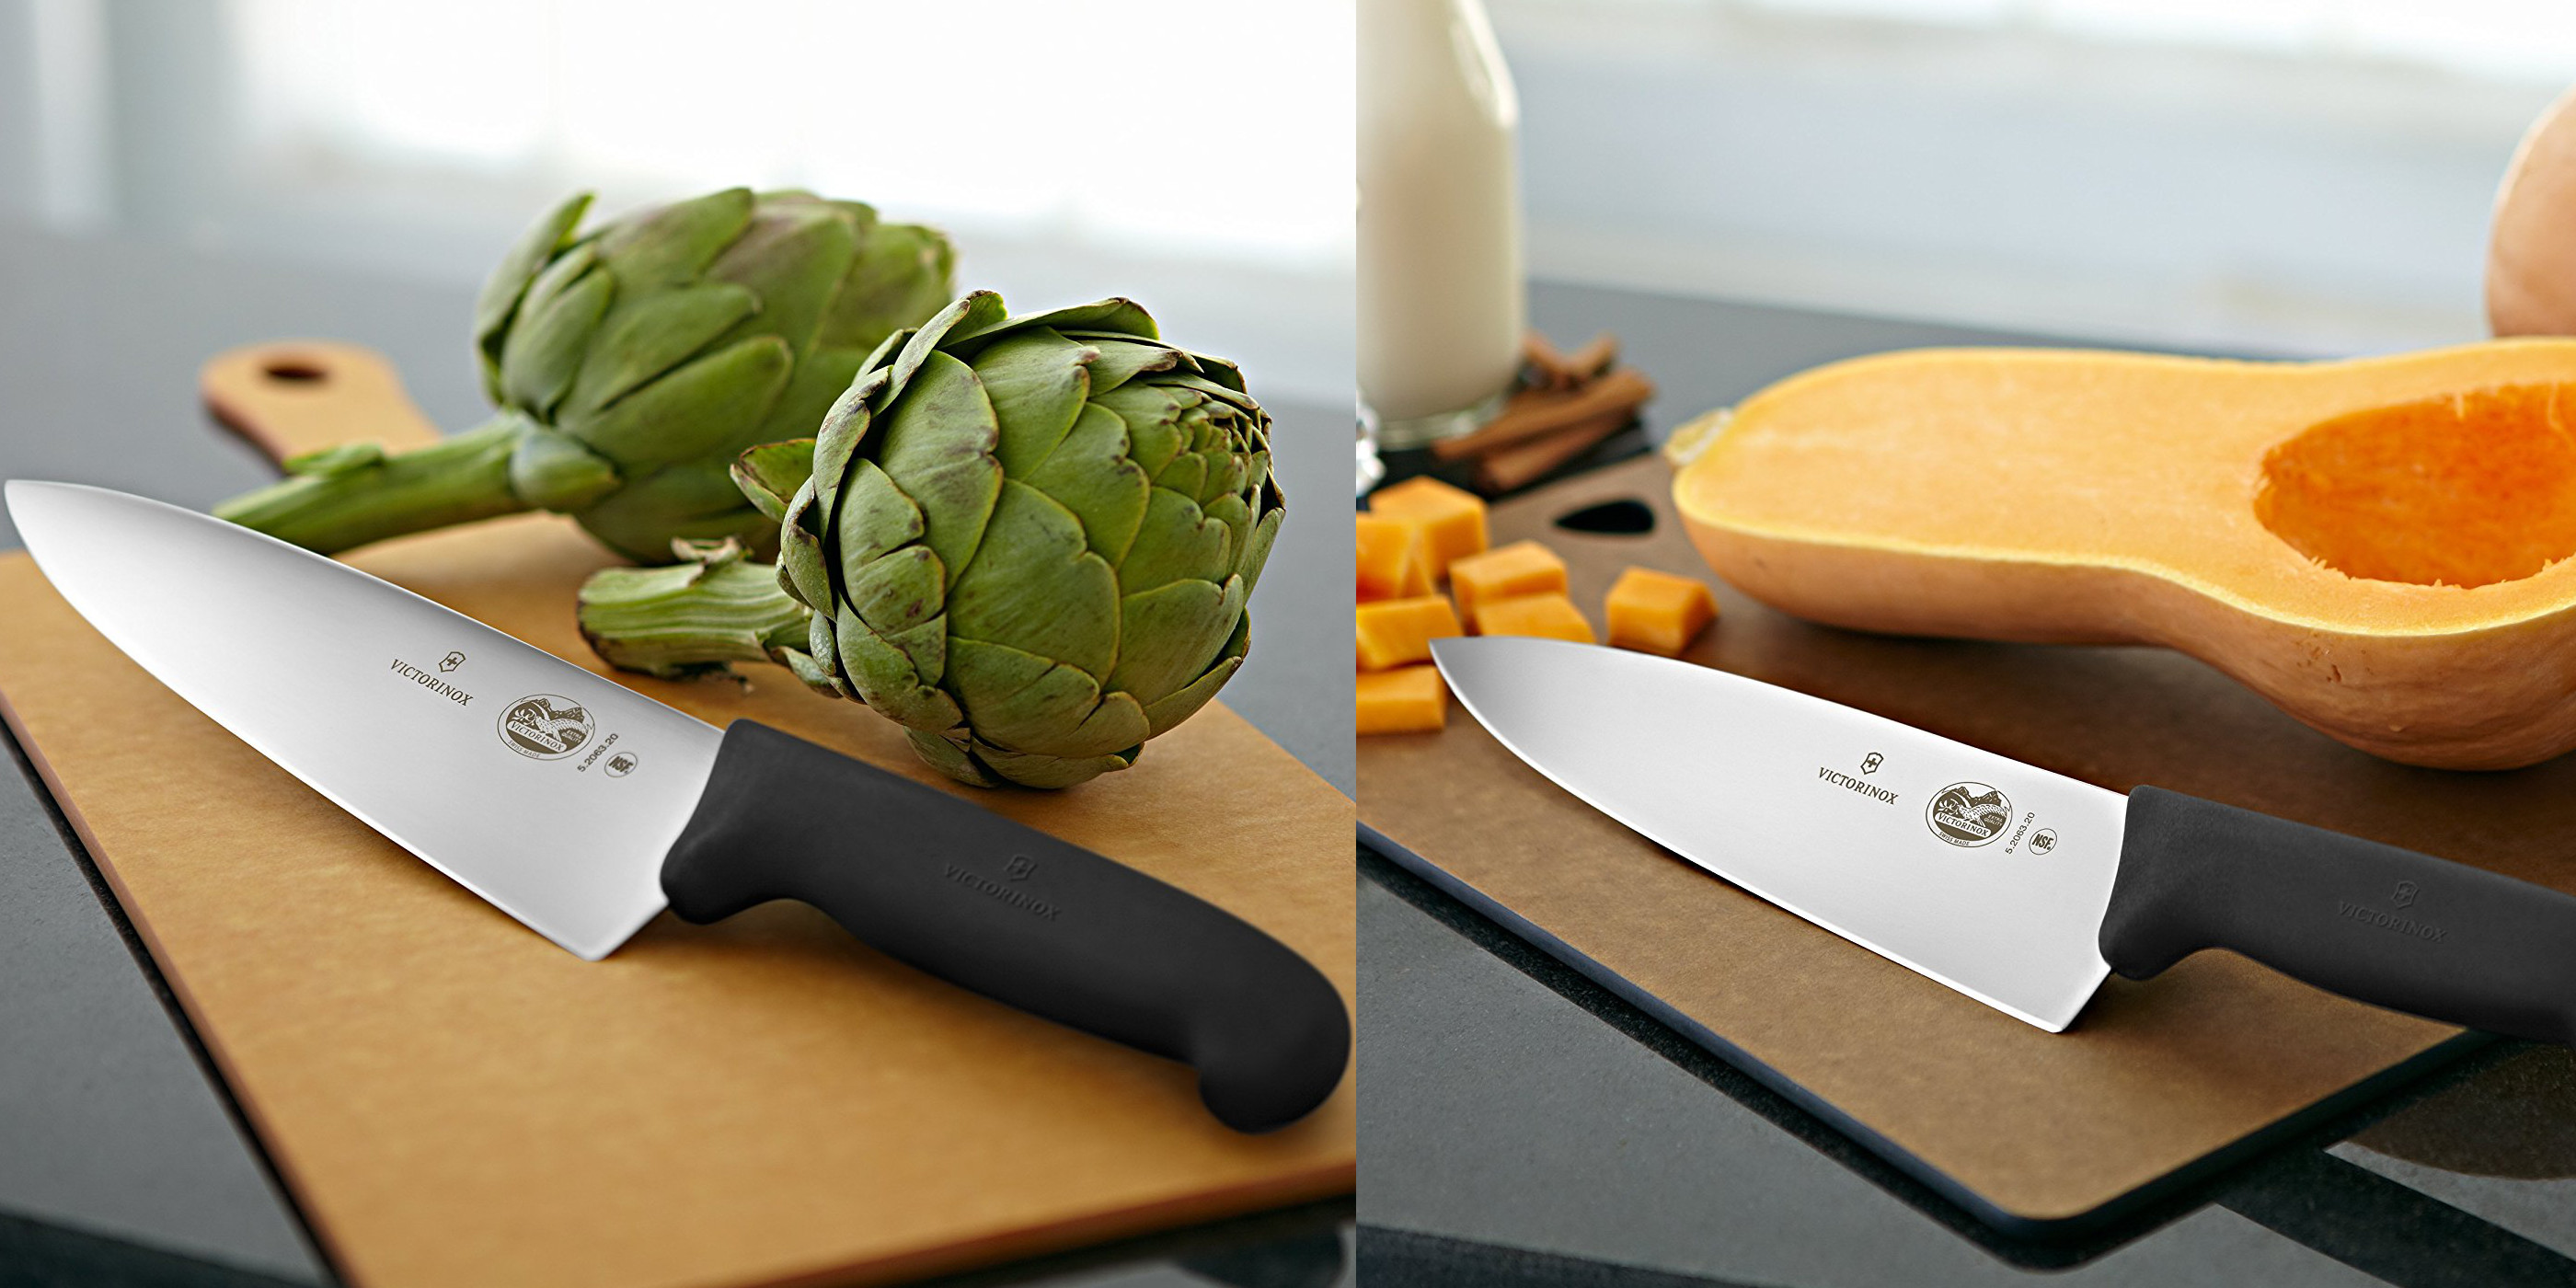 Victorinox Pro 8″ Chef's Knife w/ lifetime warranty drops to just $29 at Amazon